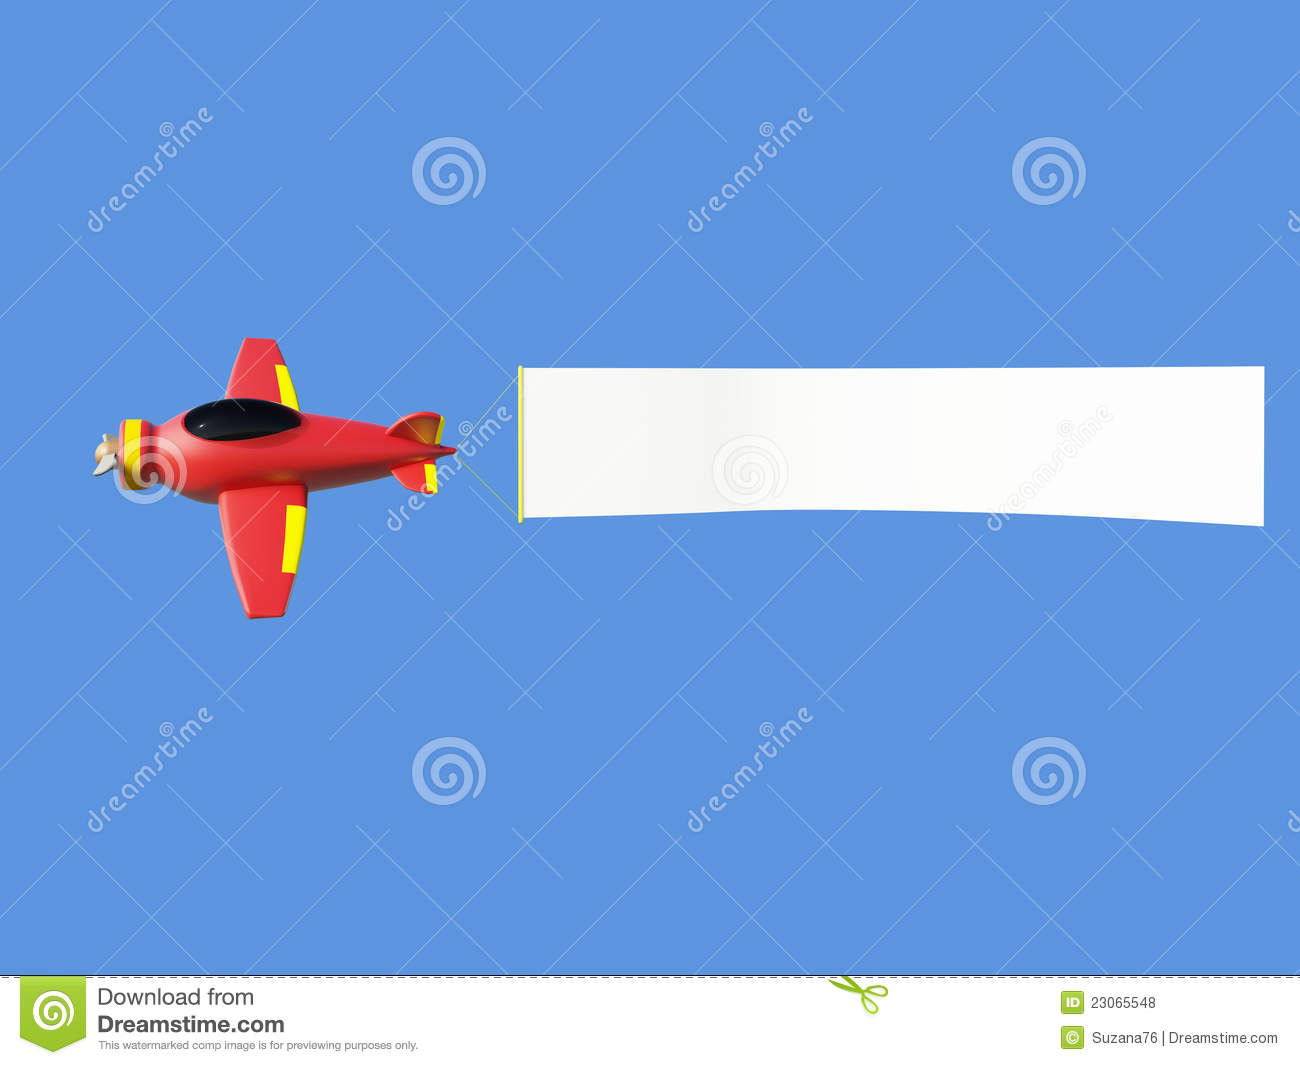 Plane pulling sign clipart black and white download Plane Pulling Banner Sky Stock Illustrations – 67 Plane Pulling ... black and white download